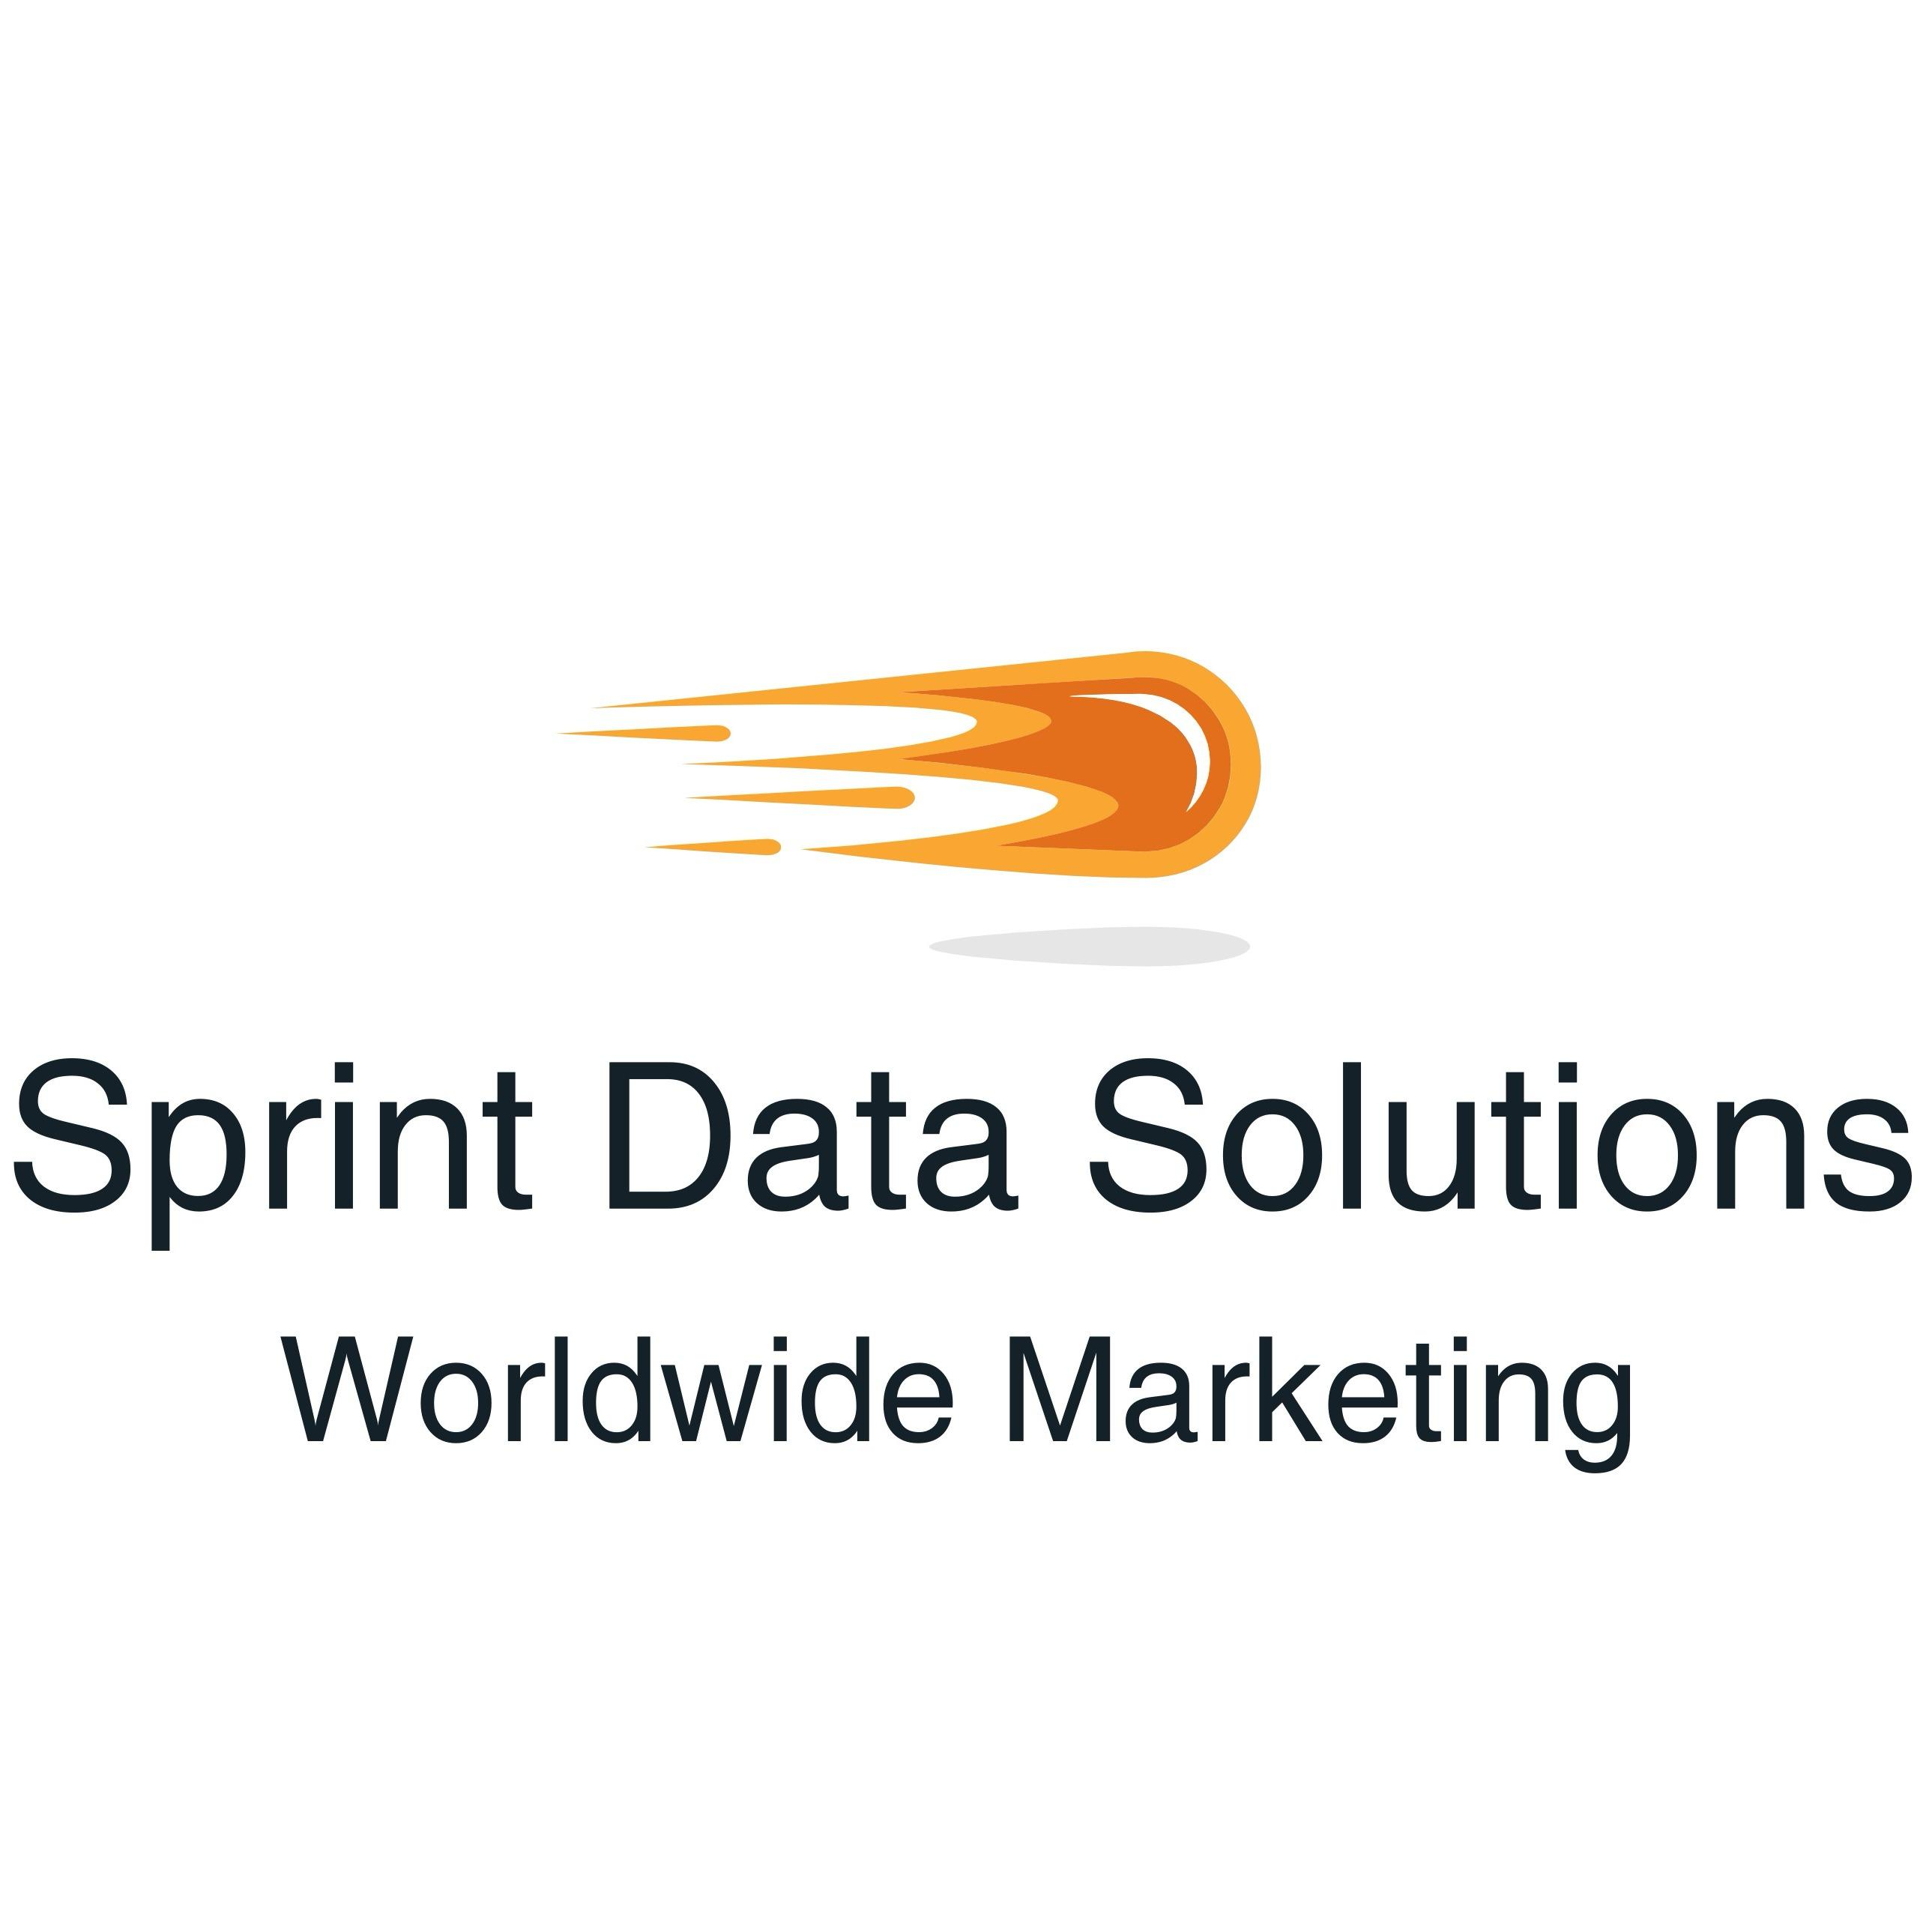 Sprint Data Solutions Worldwide Marketing